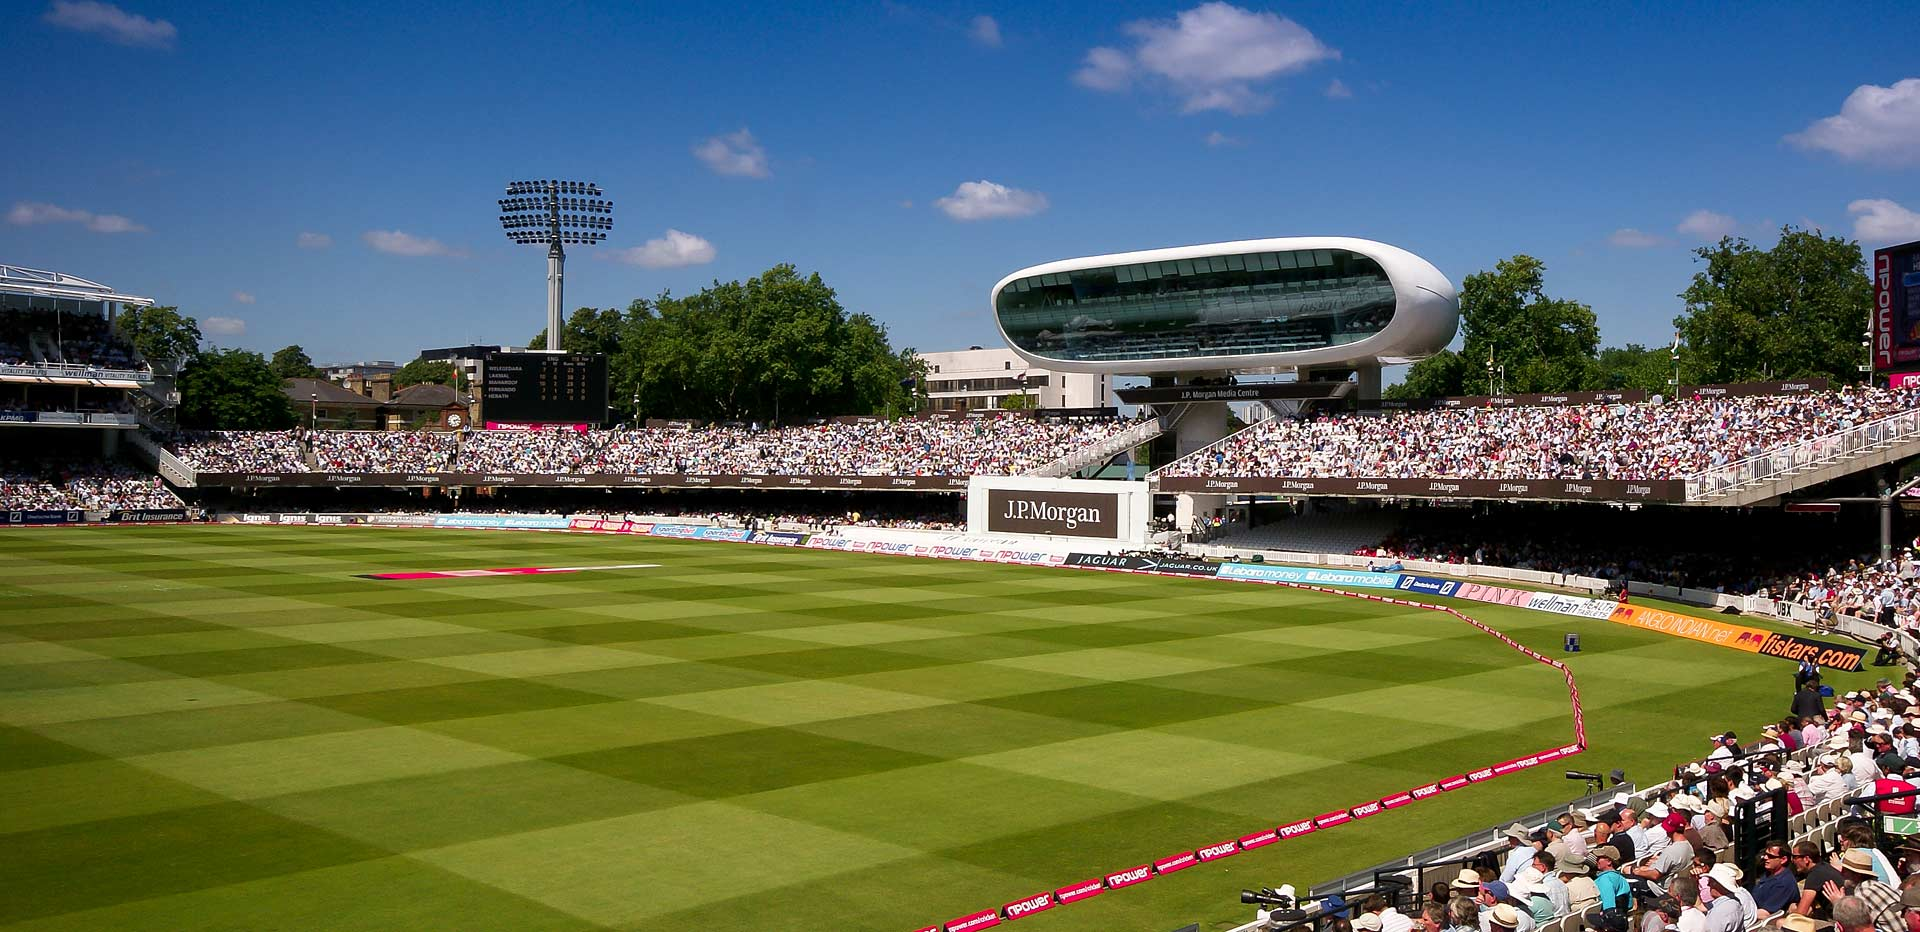 Dream of Playing at Lord's?